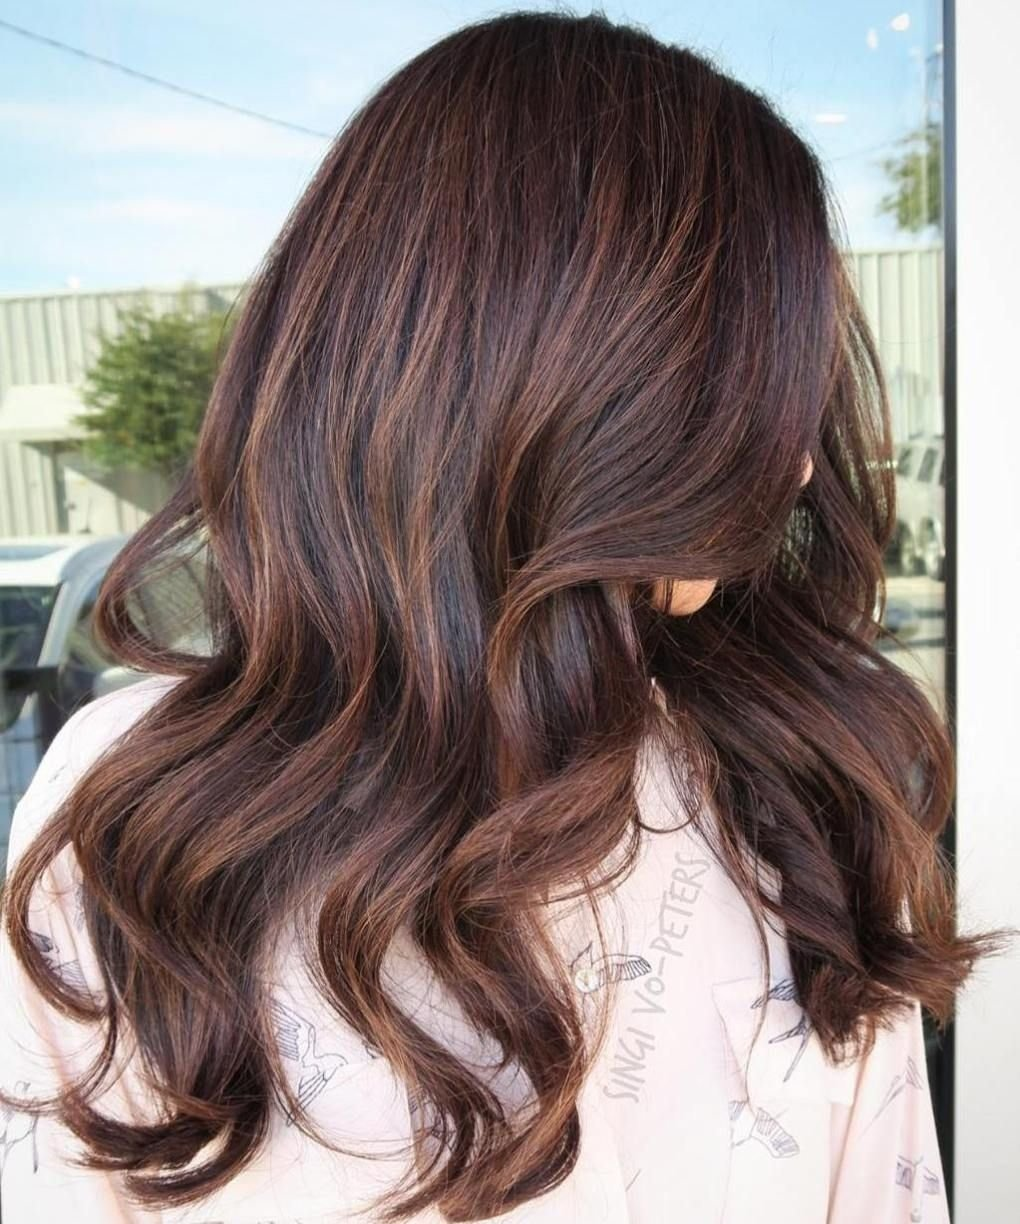 10 Awesome Hair Color Ideas For Brunettes With Highlights